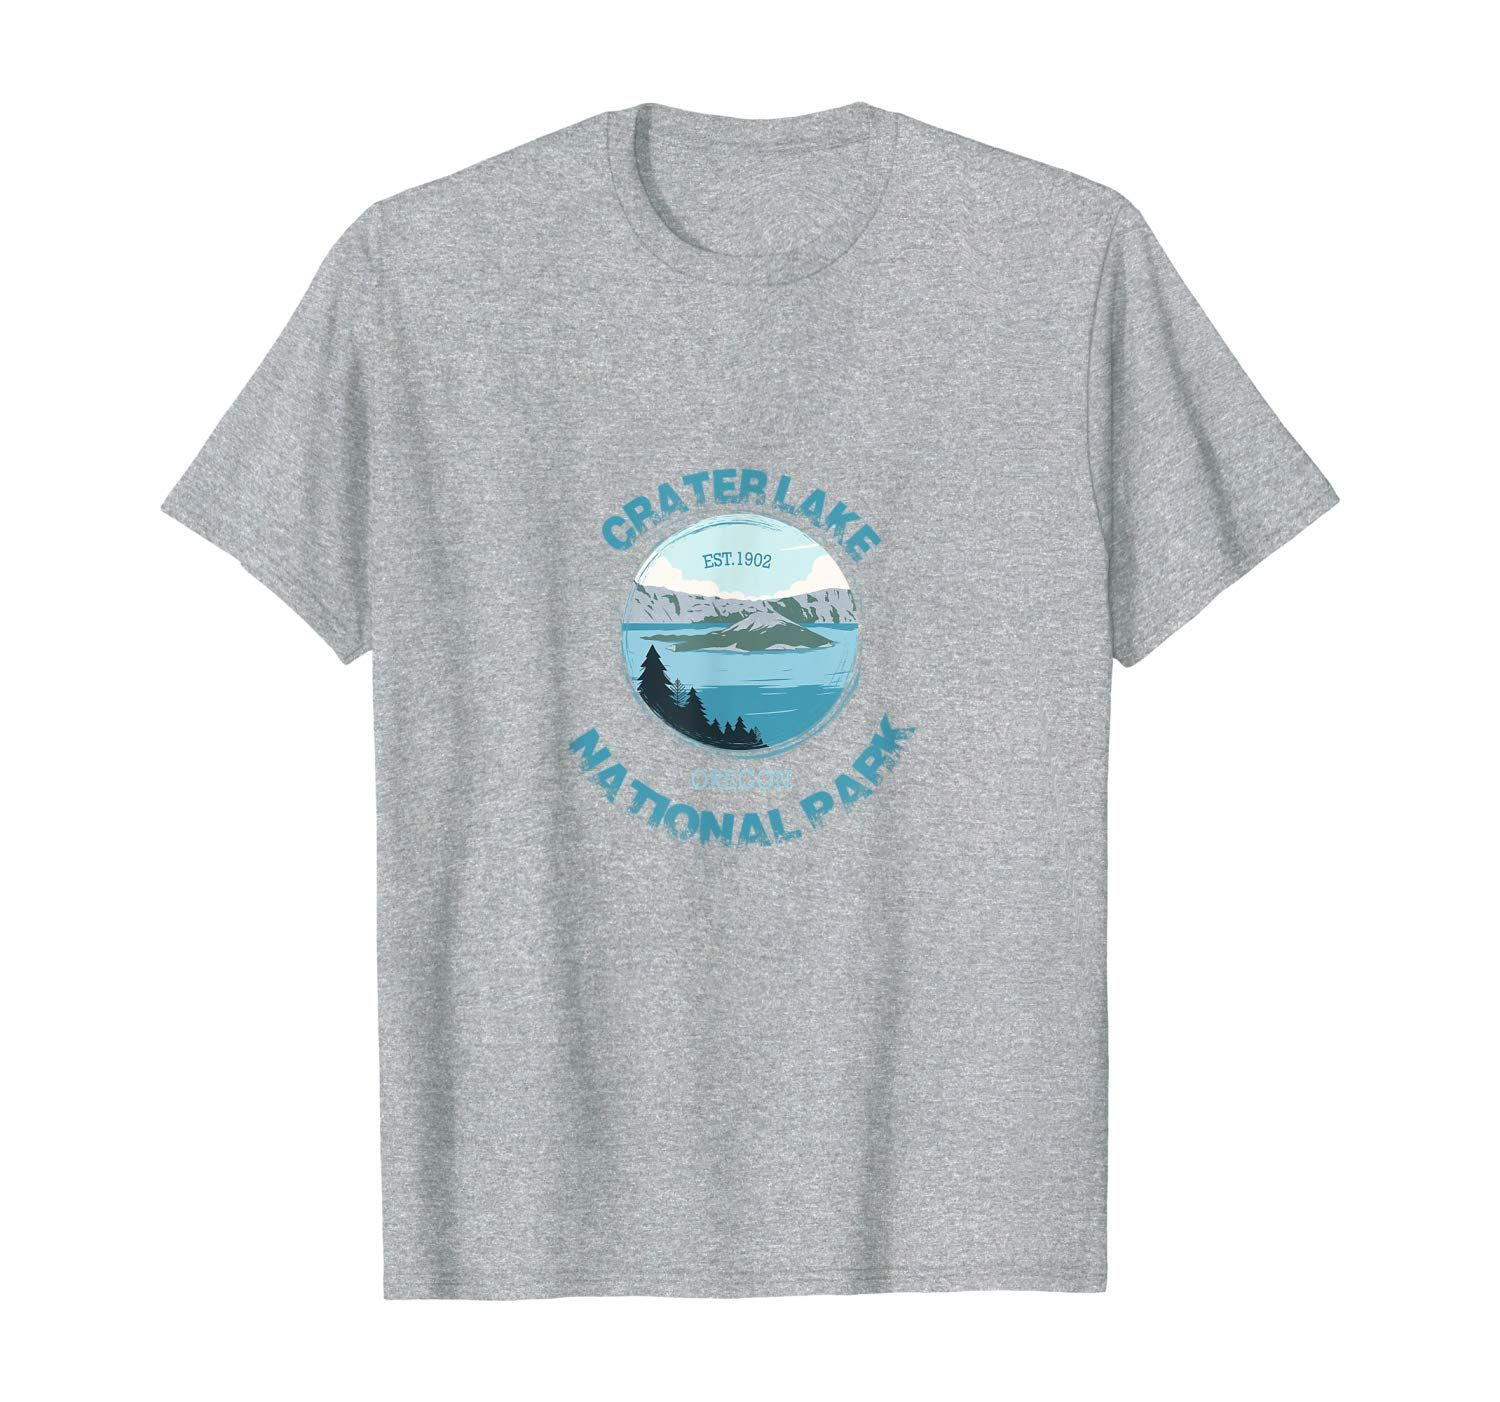 Scenic Crater Lake National Park T-Shirt #craterlakenationalpark